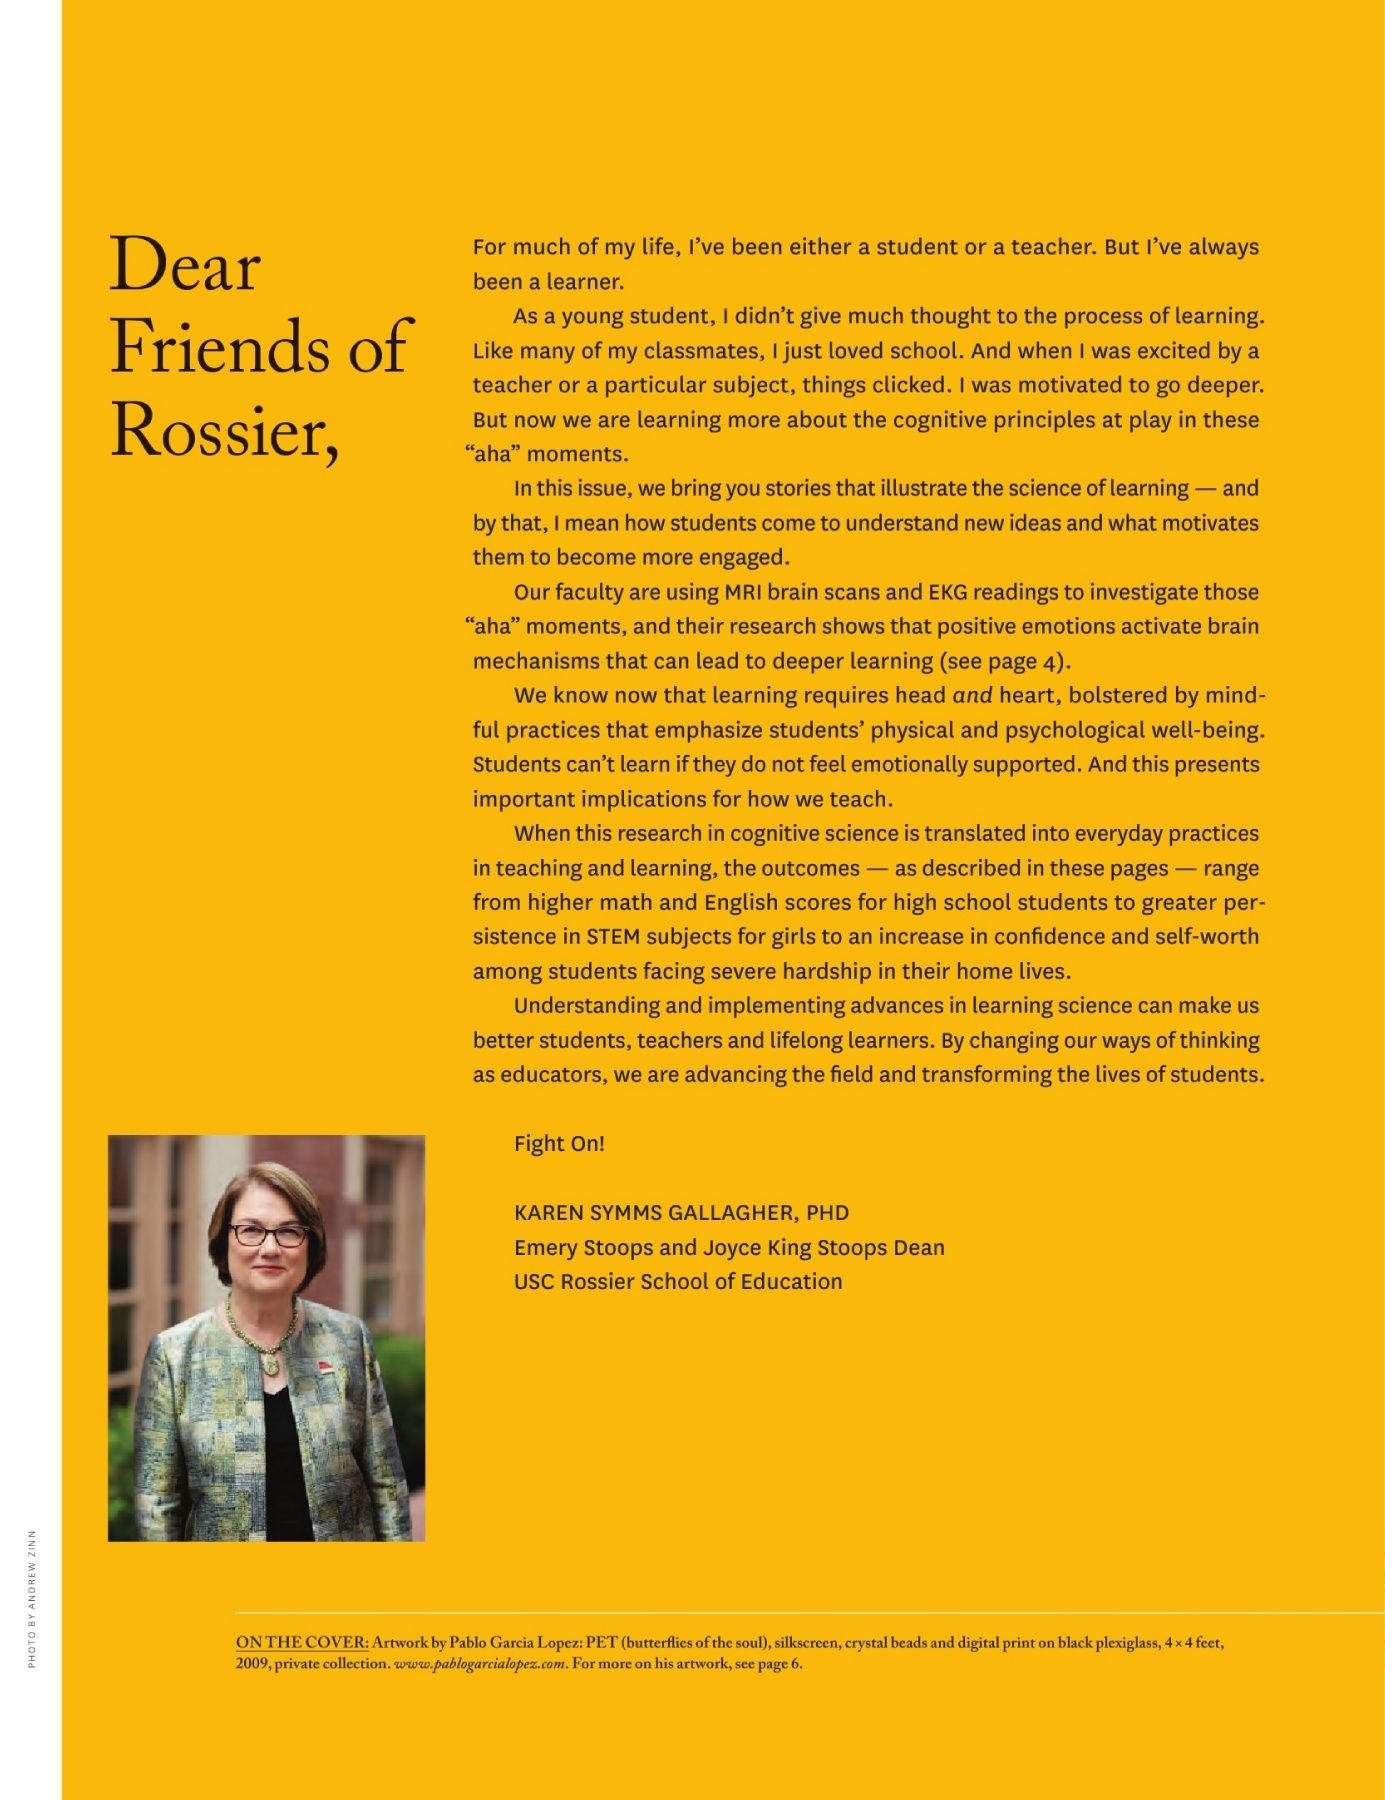 Spring/Summer 2018 - USC Rossier School of Education